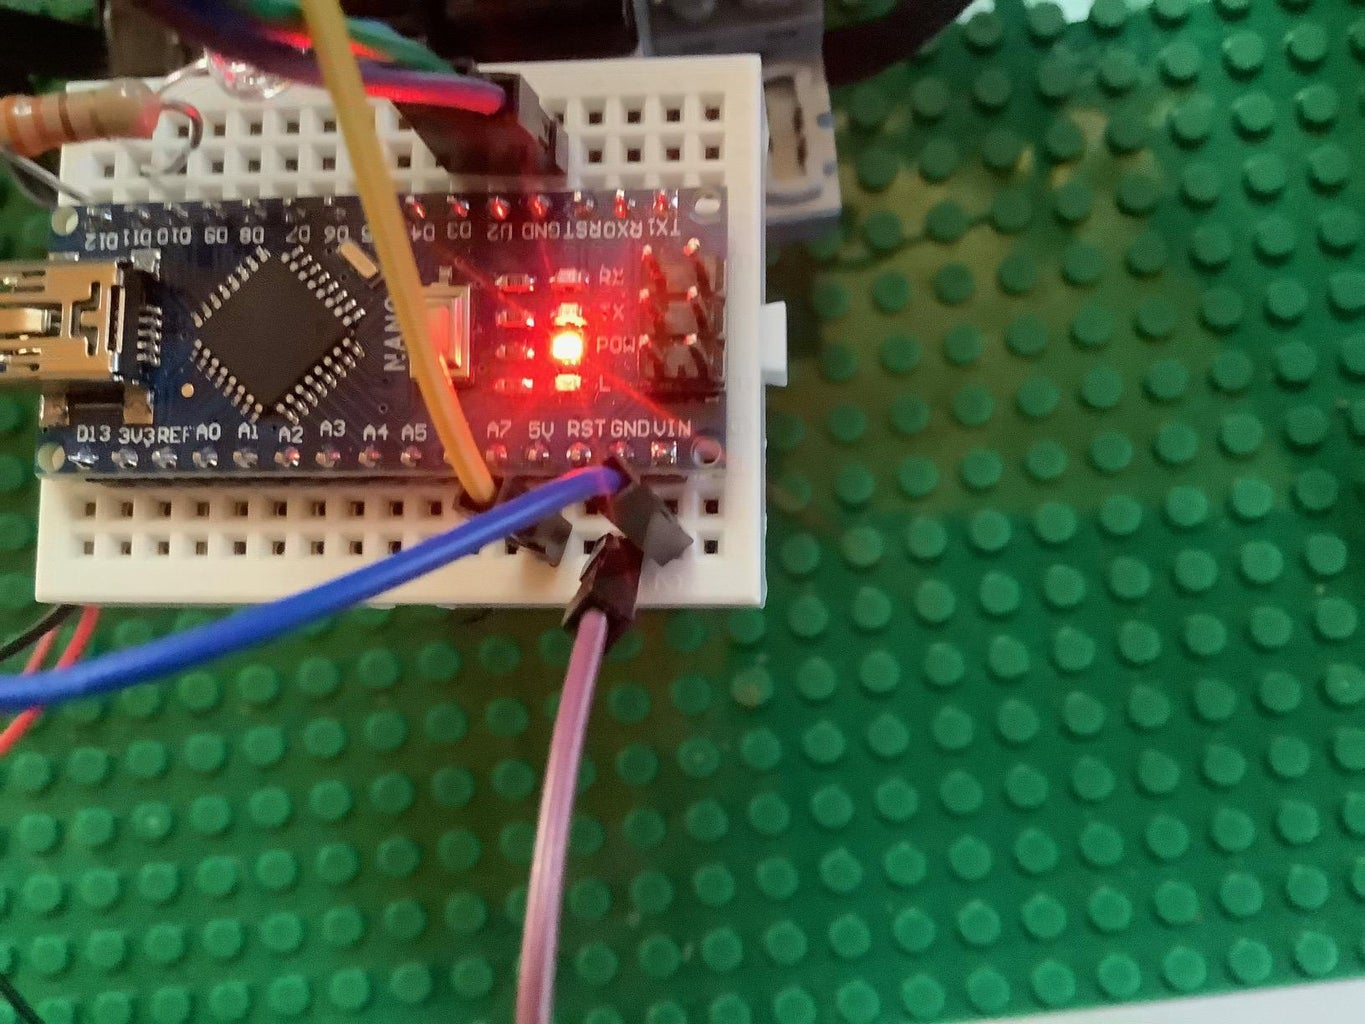 Add the Arduino and Electronics